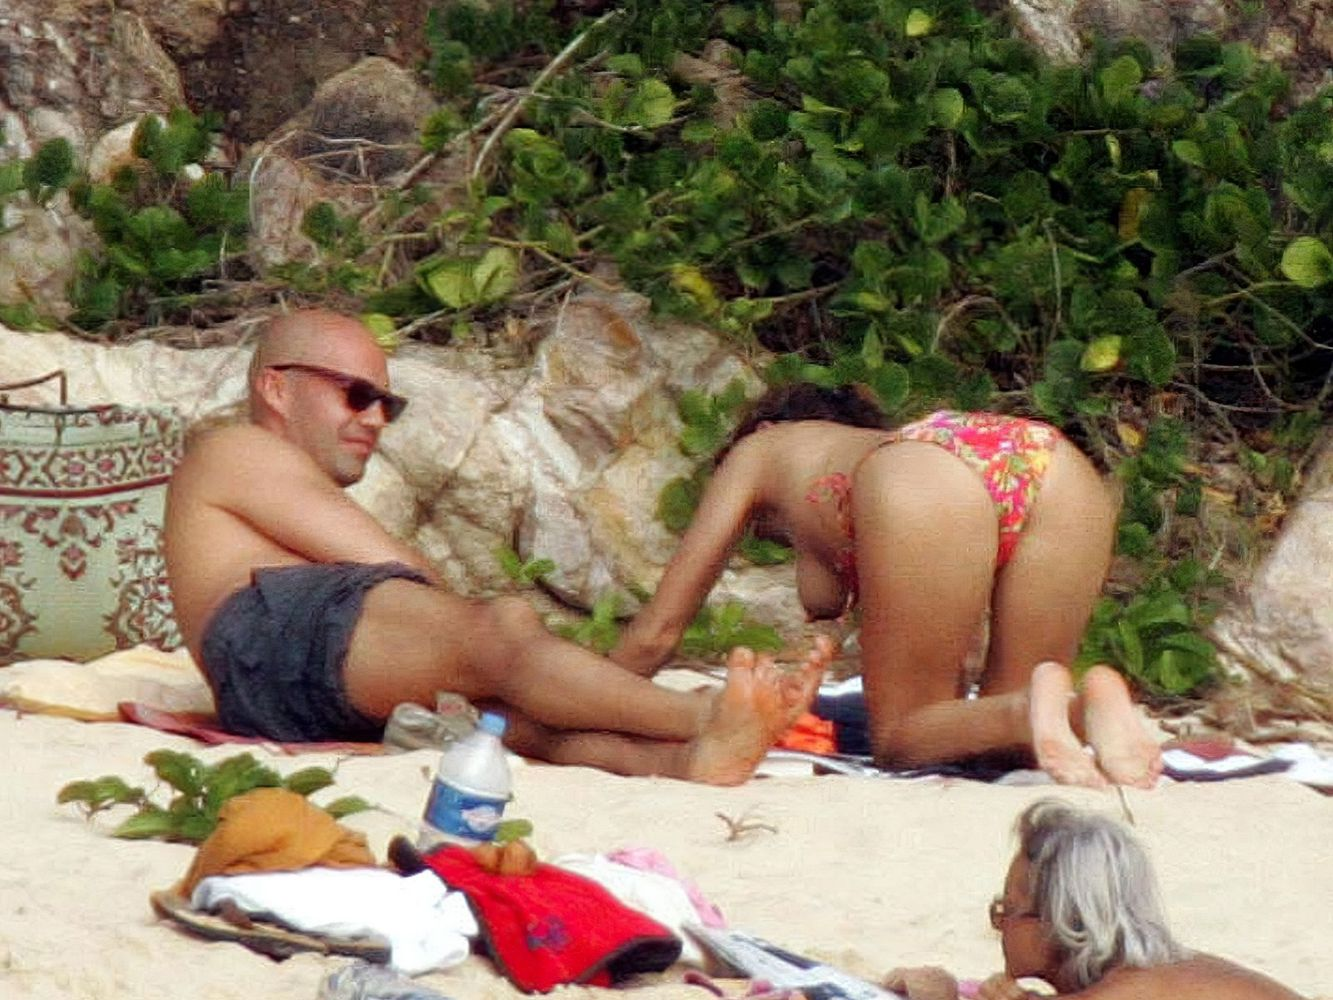 Re-Visiting When Kelly Brook was Topless in St. Barts! (NSFW)